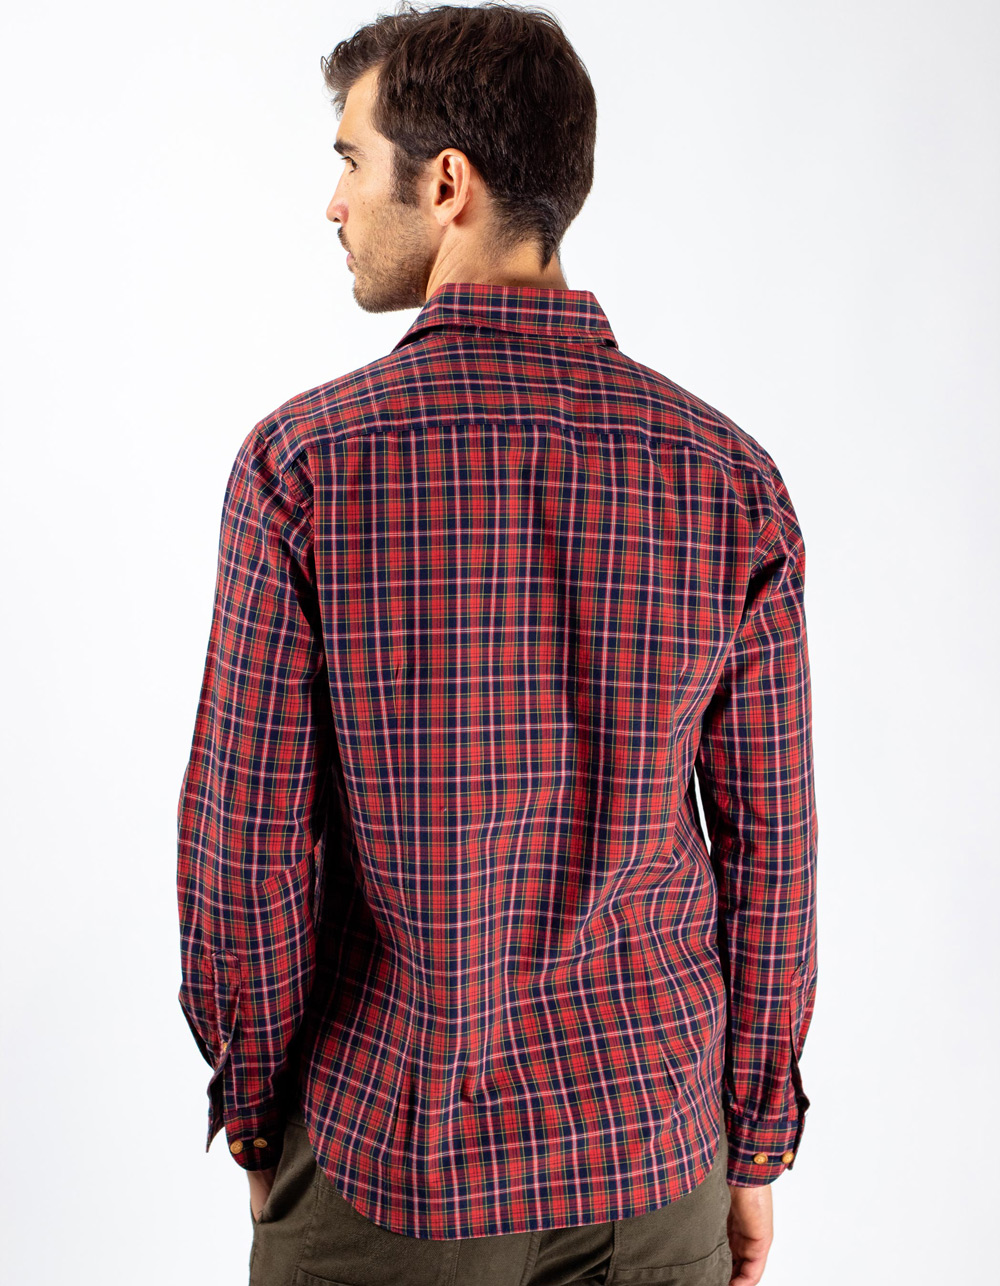 Tartan plaid shirt - Backside